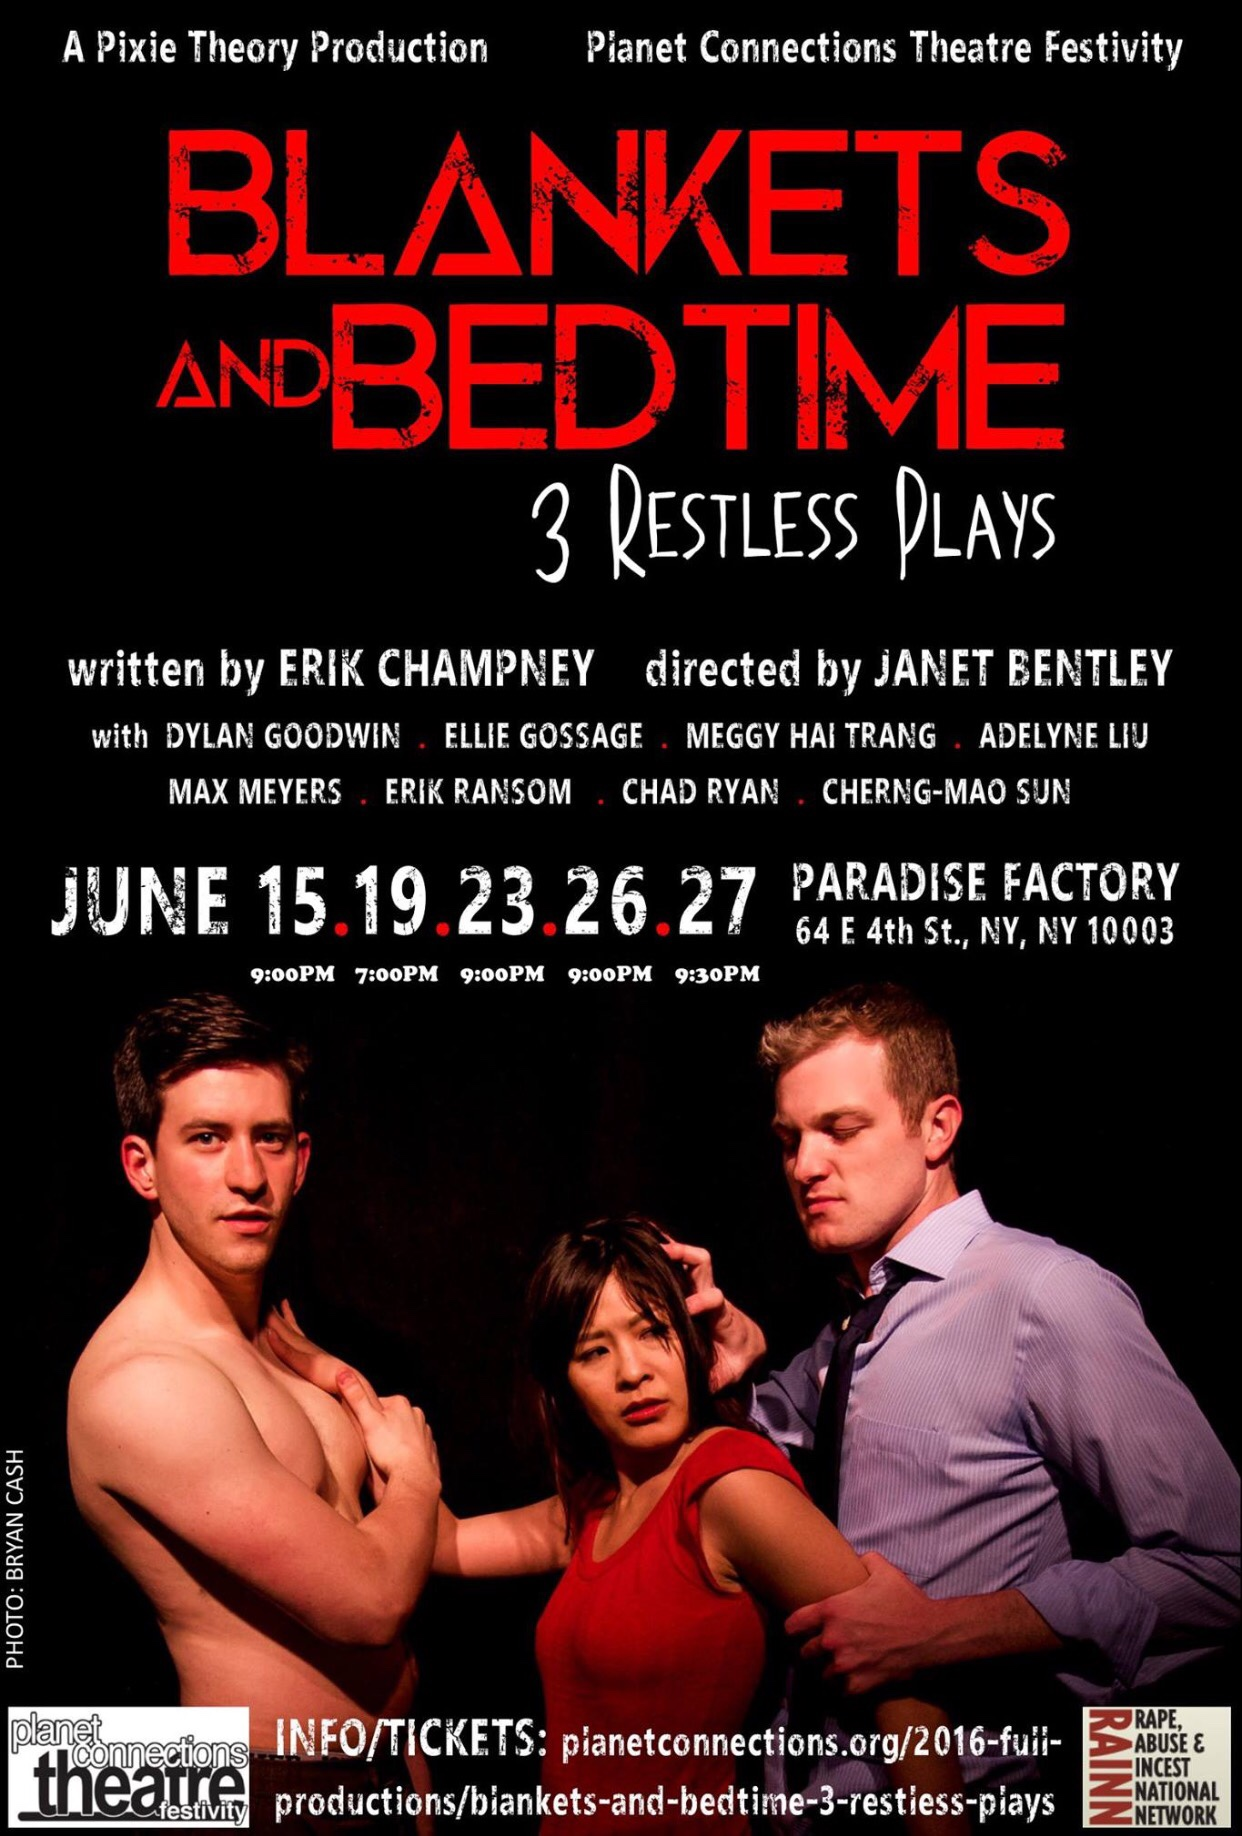 "Originally, one actor representing each of the 3 ""restless"" plays would be showcased in  Blankets and Bedtime 's marketing. A scheduling mishap called for a quick replacement for our photo shoot, which did away with the desired concept. Max Meyers (L) and Chad Ryan (R) were co-stars in one piece but neither ever shared the stage with Meggy Hai-Trang."